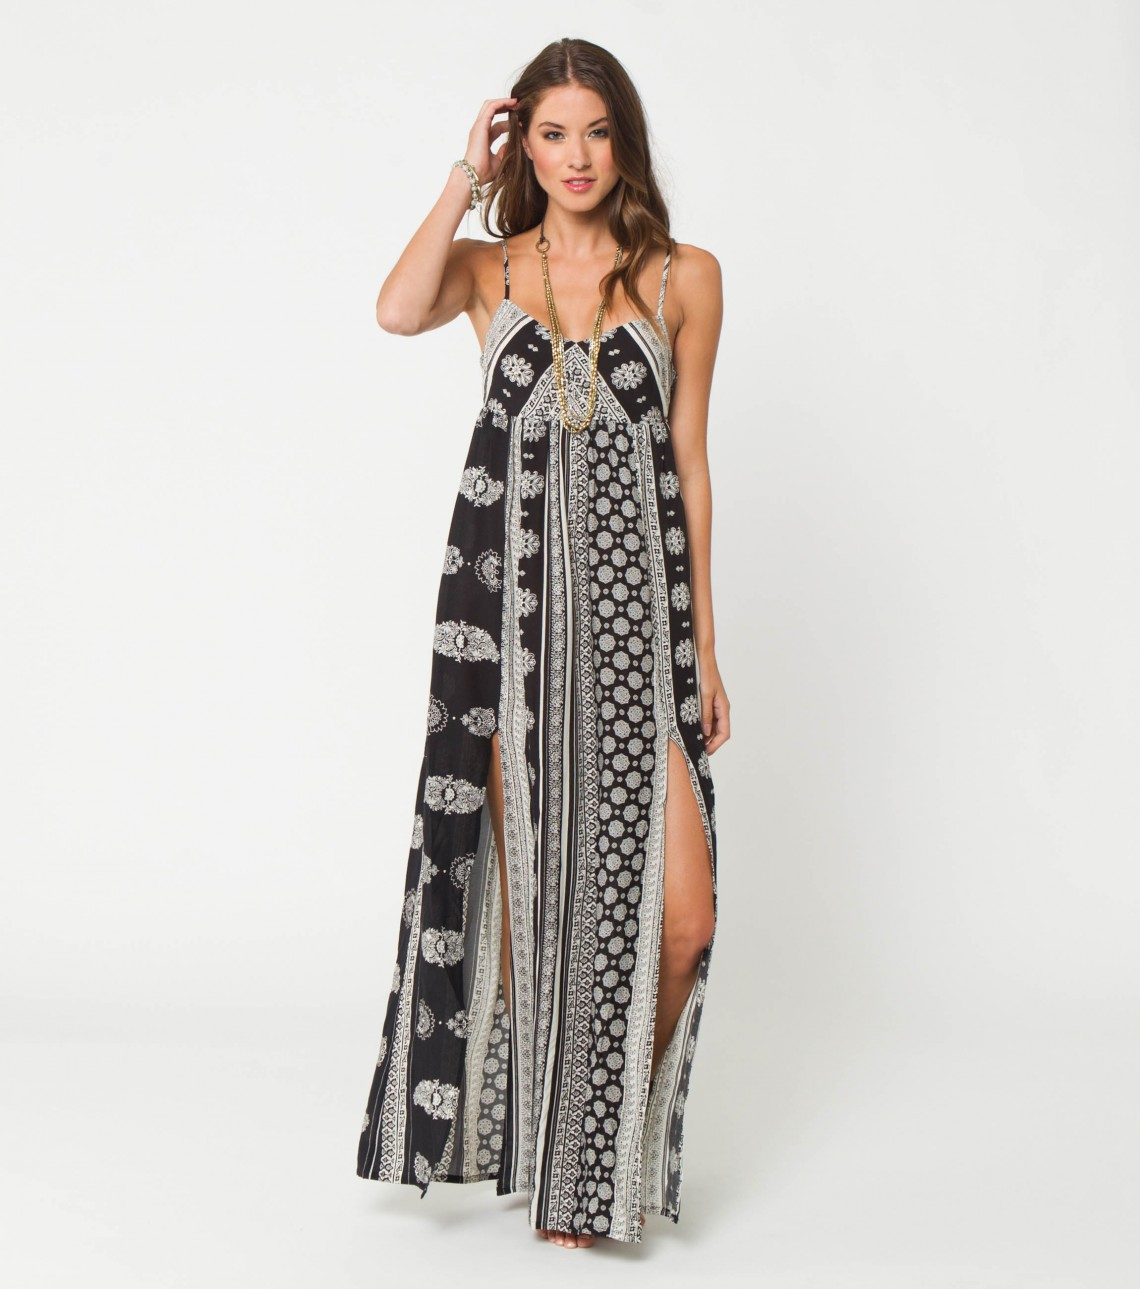 O'Neill CASTY DRESS from Official US O'Neill Store